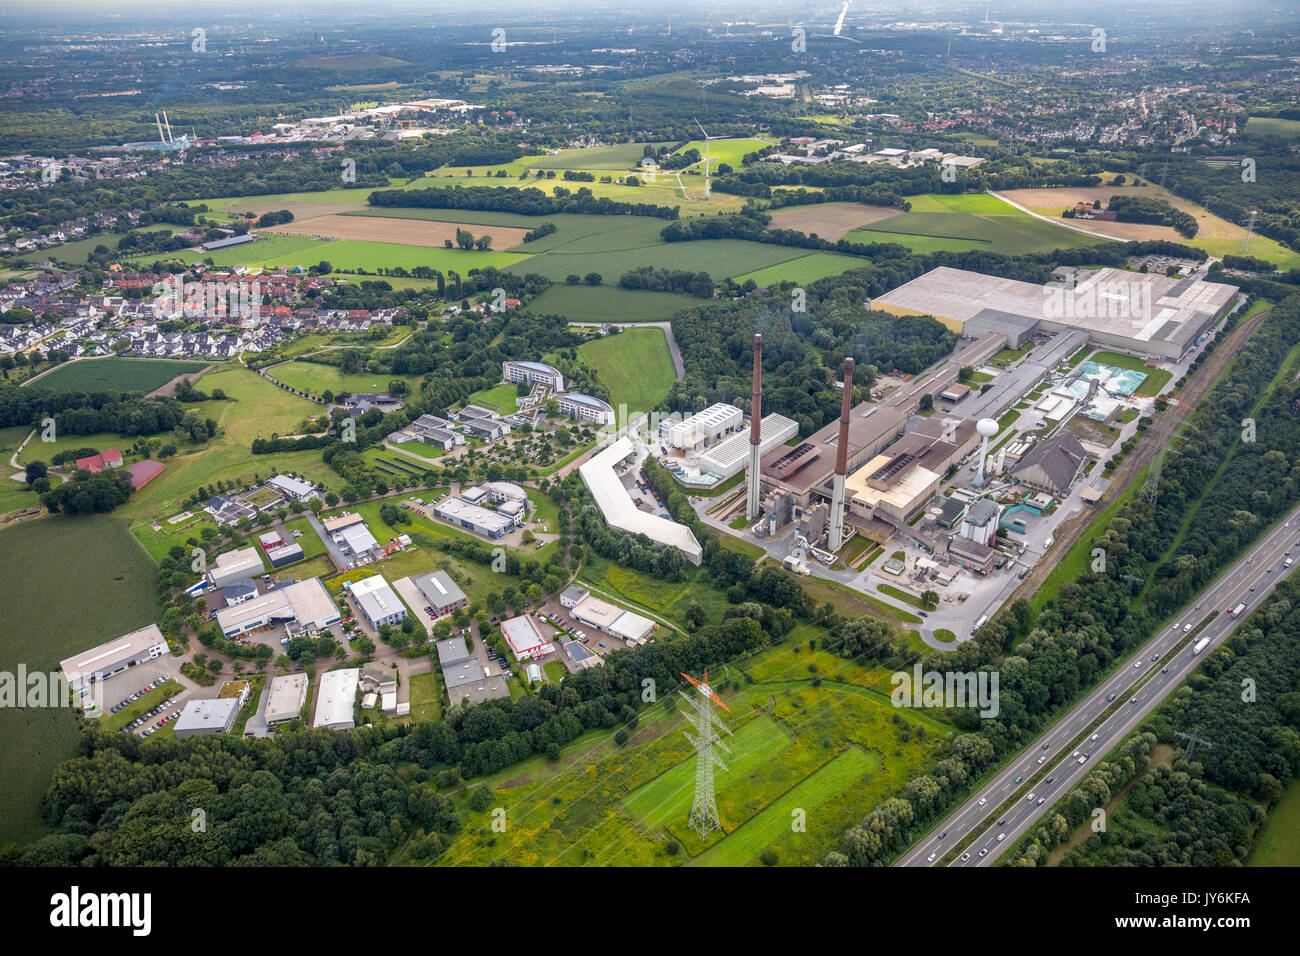 IWG innovation Wiesenbusch Gladbeck mbH, ERIKS Industrial Seals GmbH, Indutechnik GmbH, Atech Innovations GmbH, GLAMAtronic welding and systems engine - Stock Image